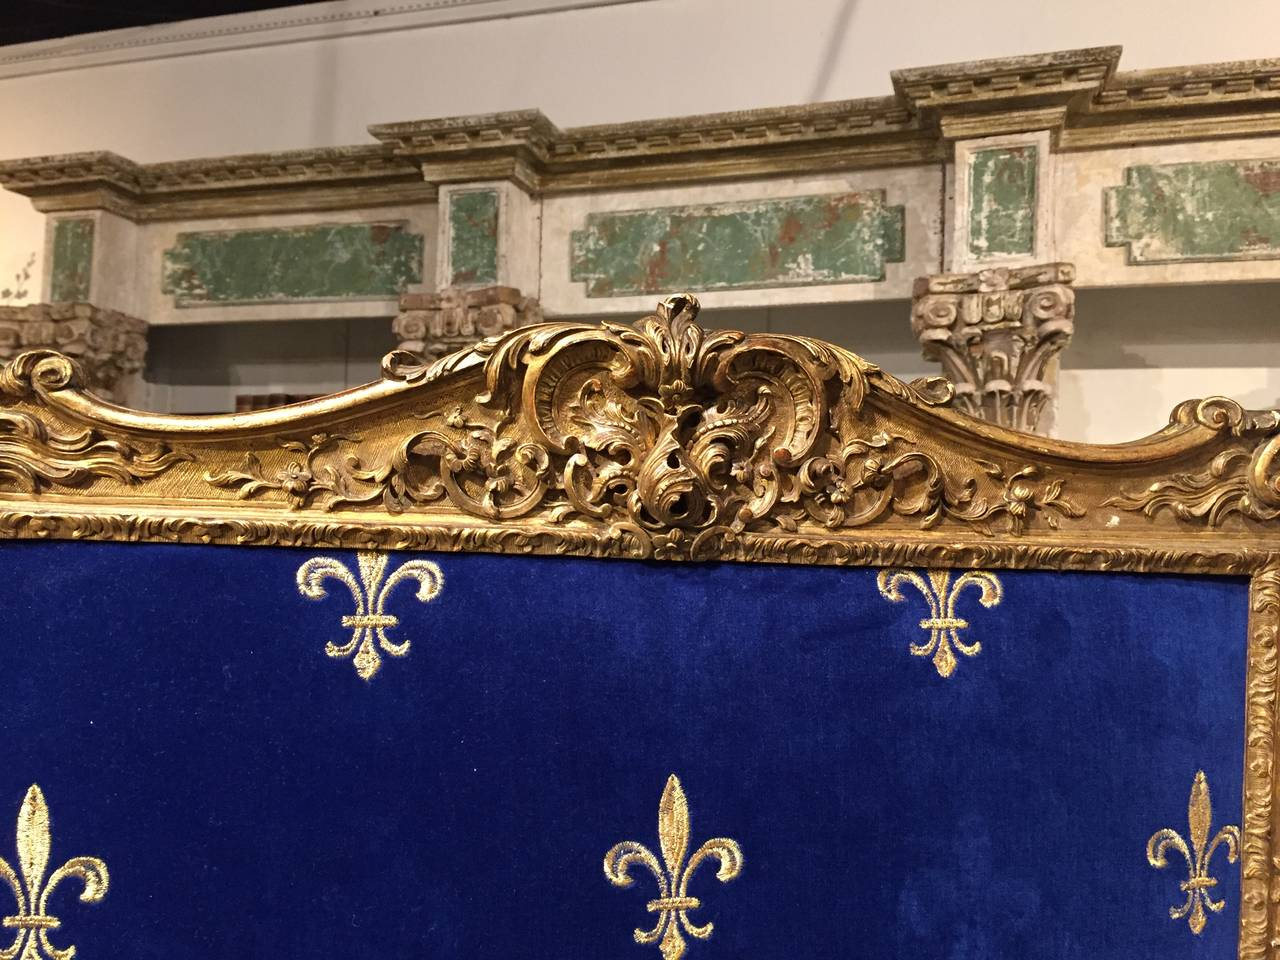 Id F 366809 as well Id F 531040 further  together with Id F 5358213 moreover Id F 5358213. on fleur de lys fireplace screen